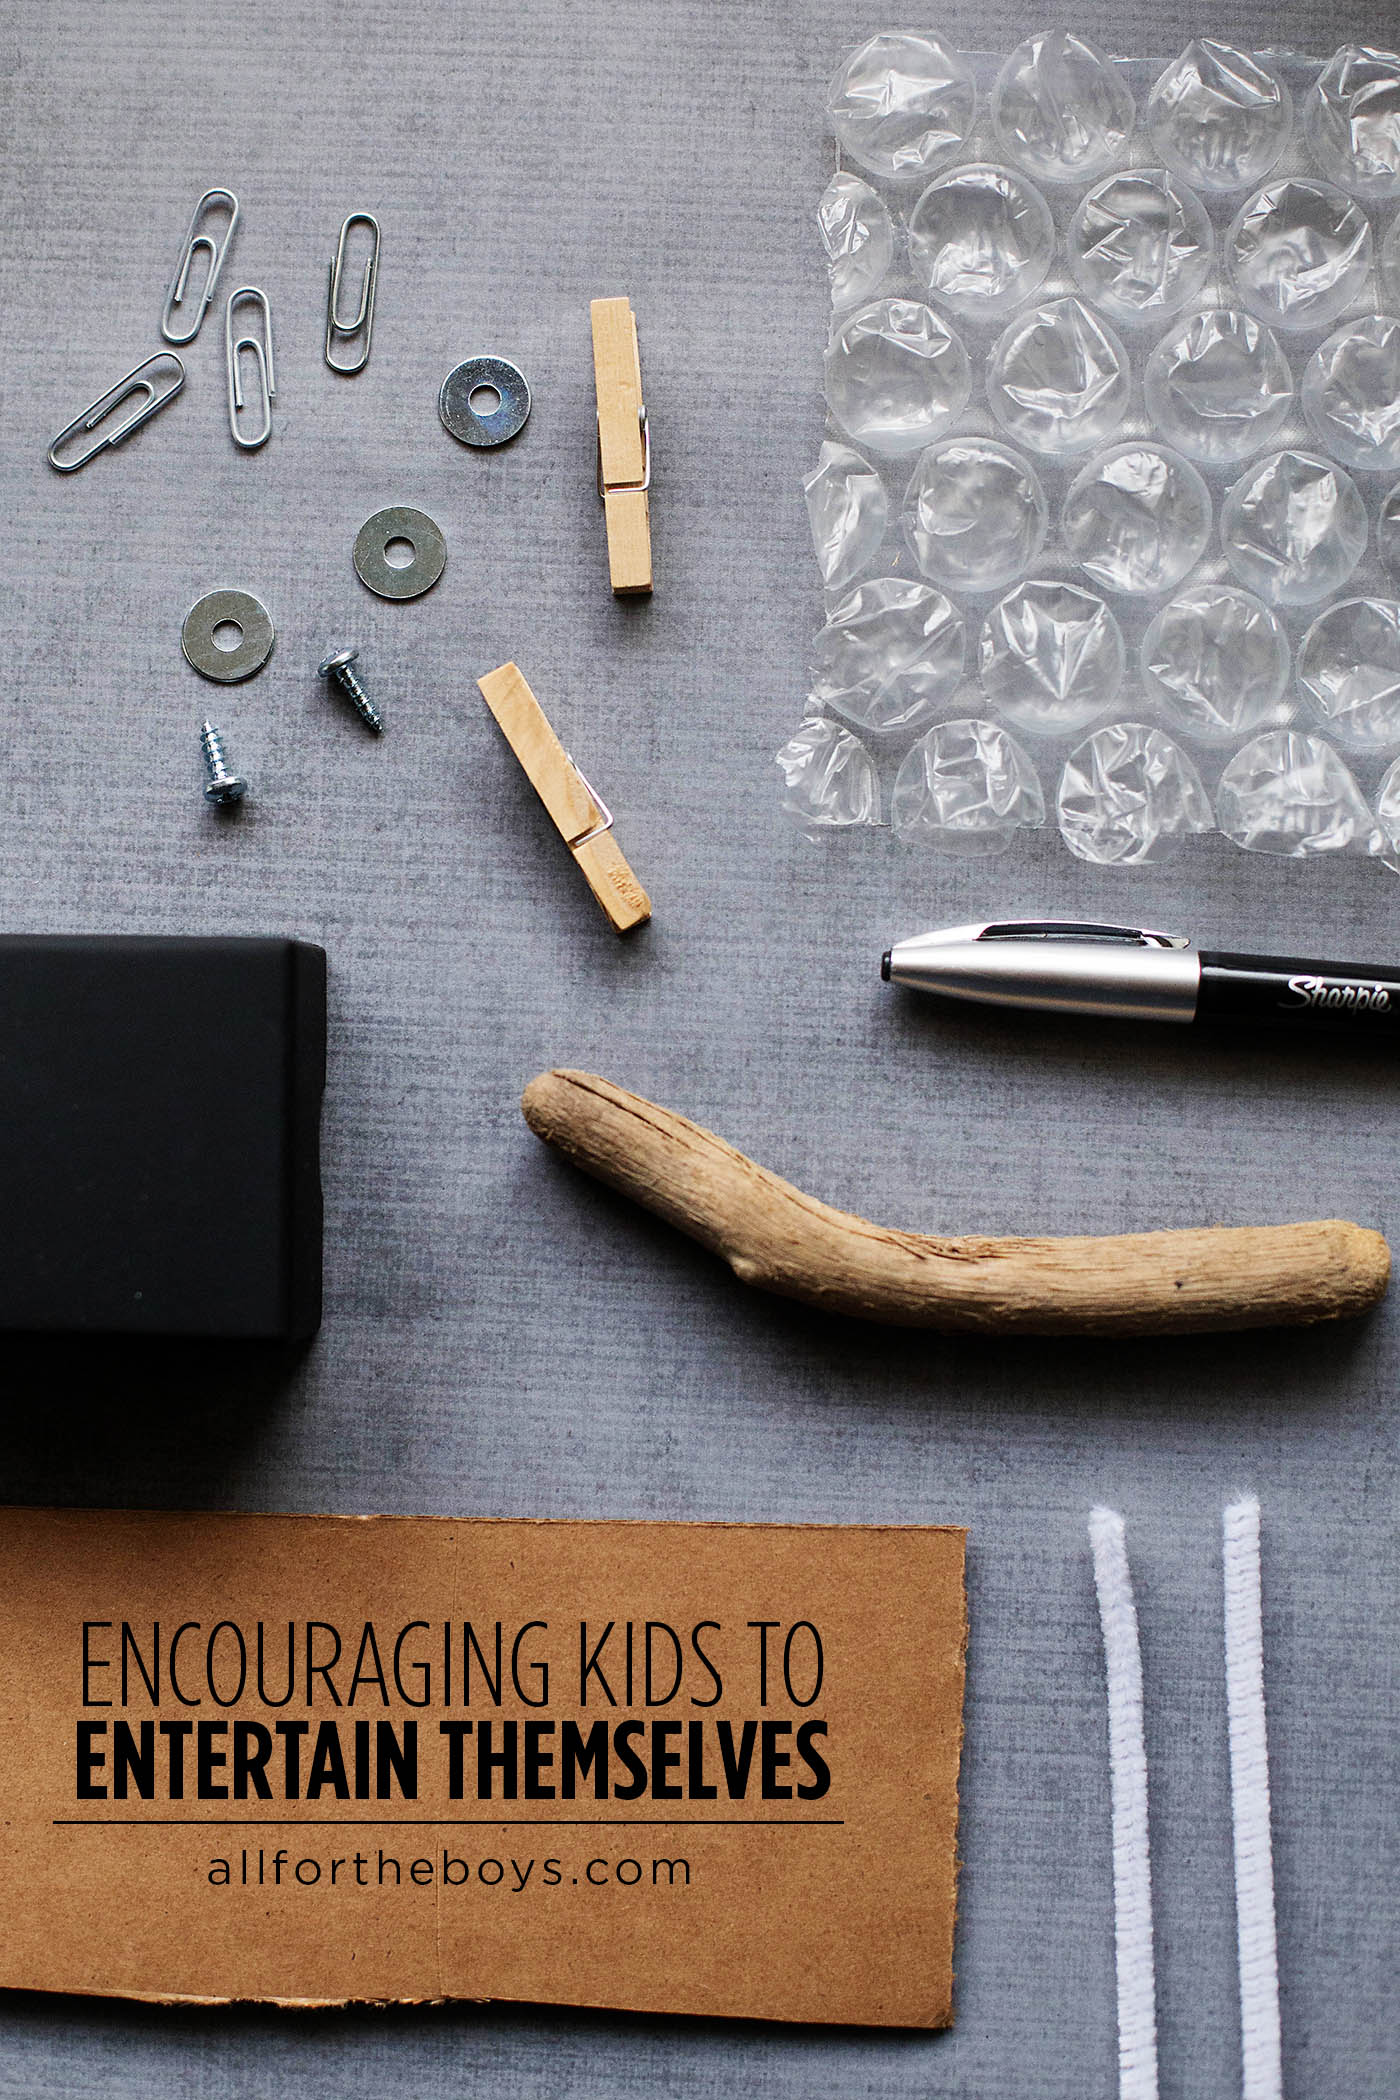 Encouraging kids to entertain themselves